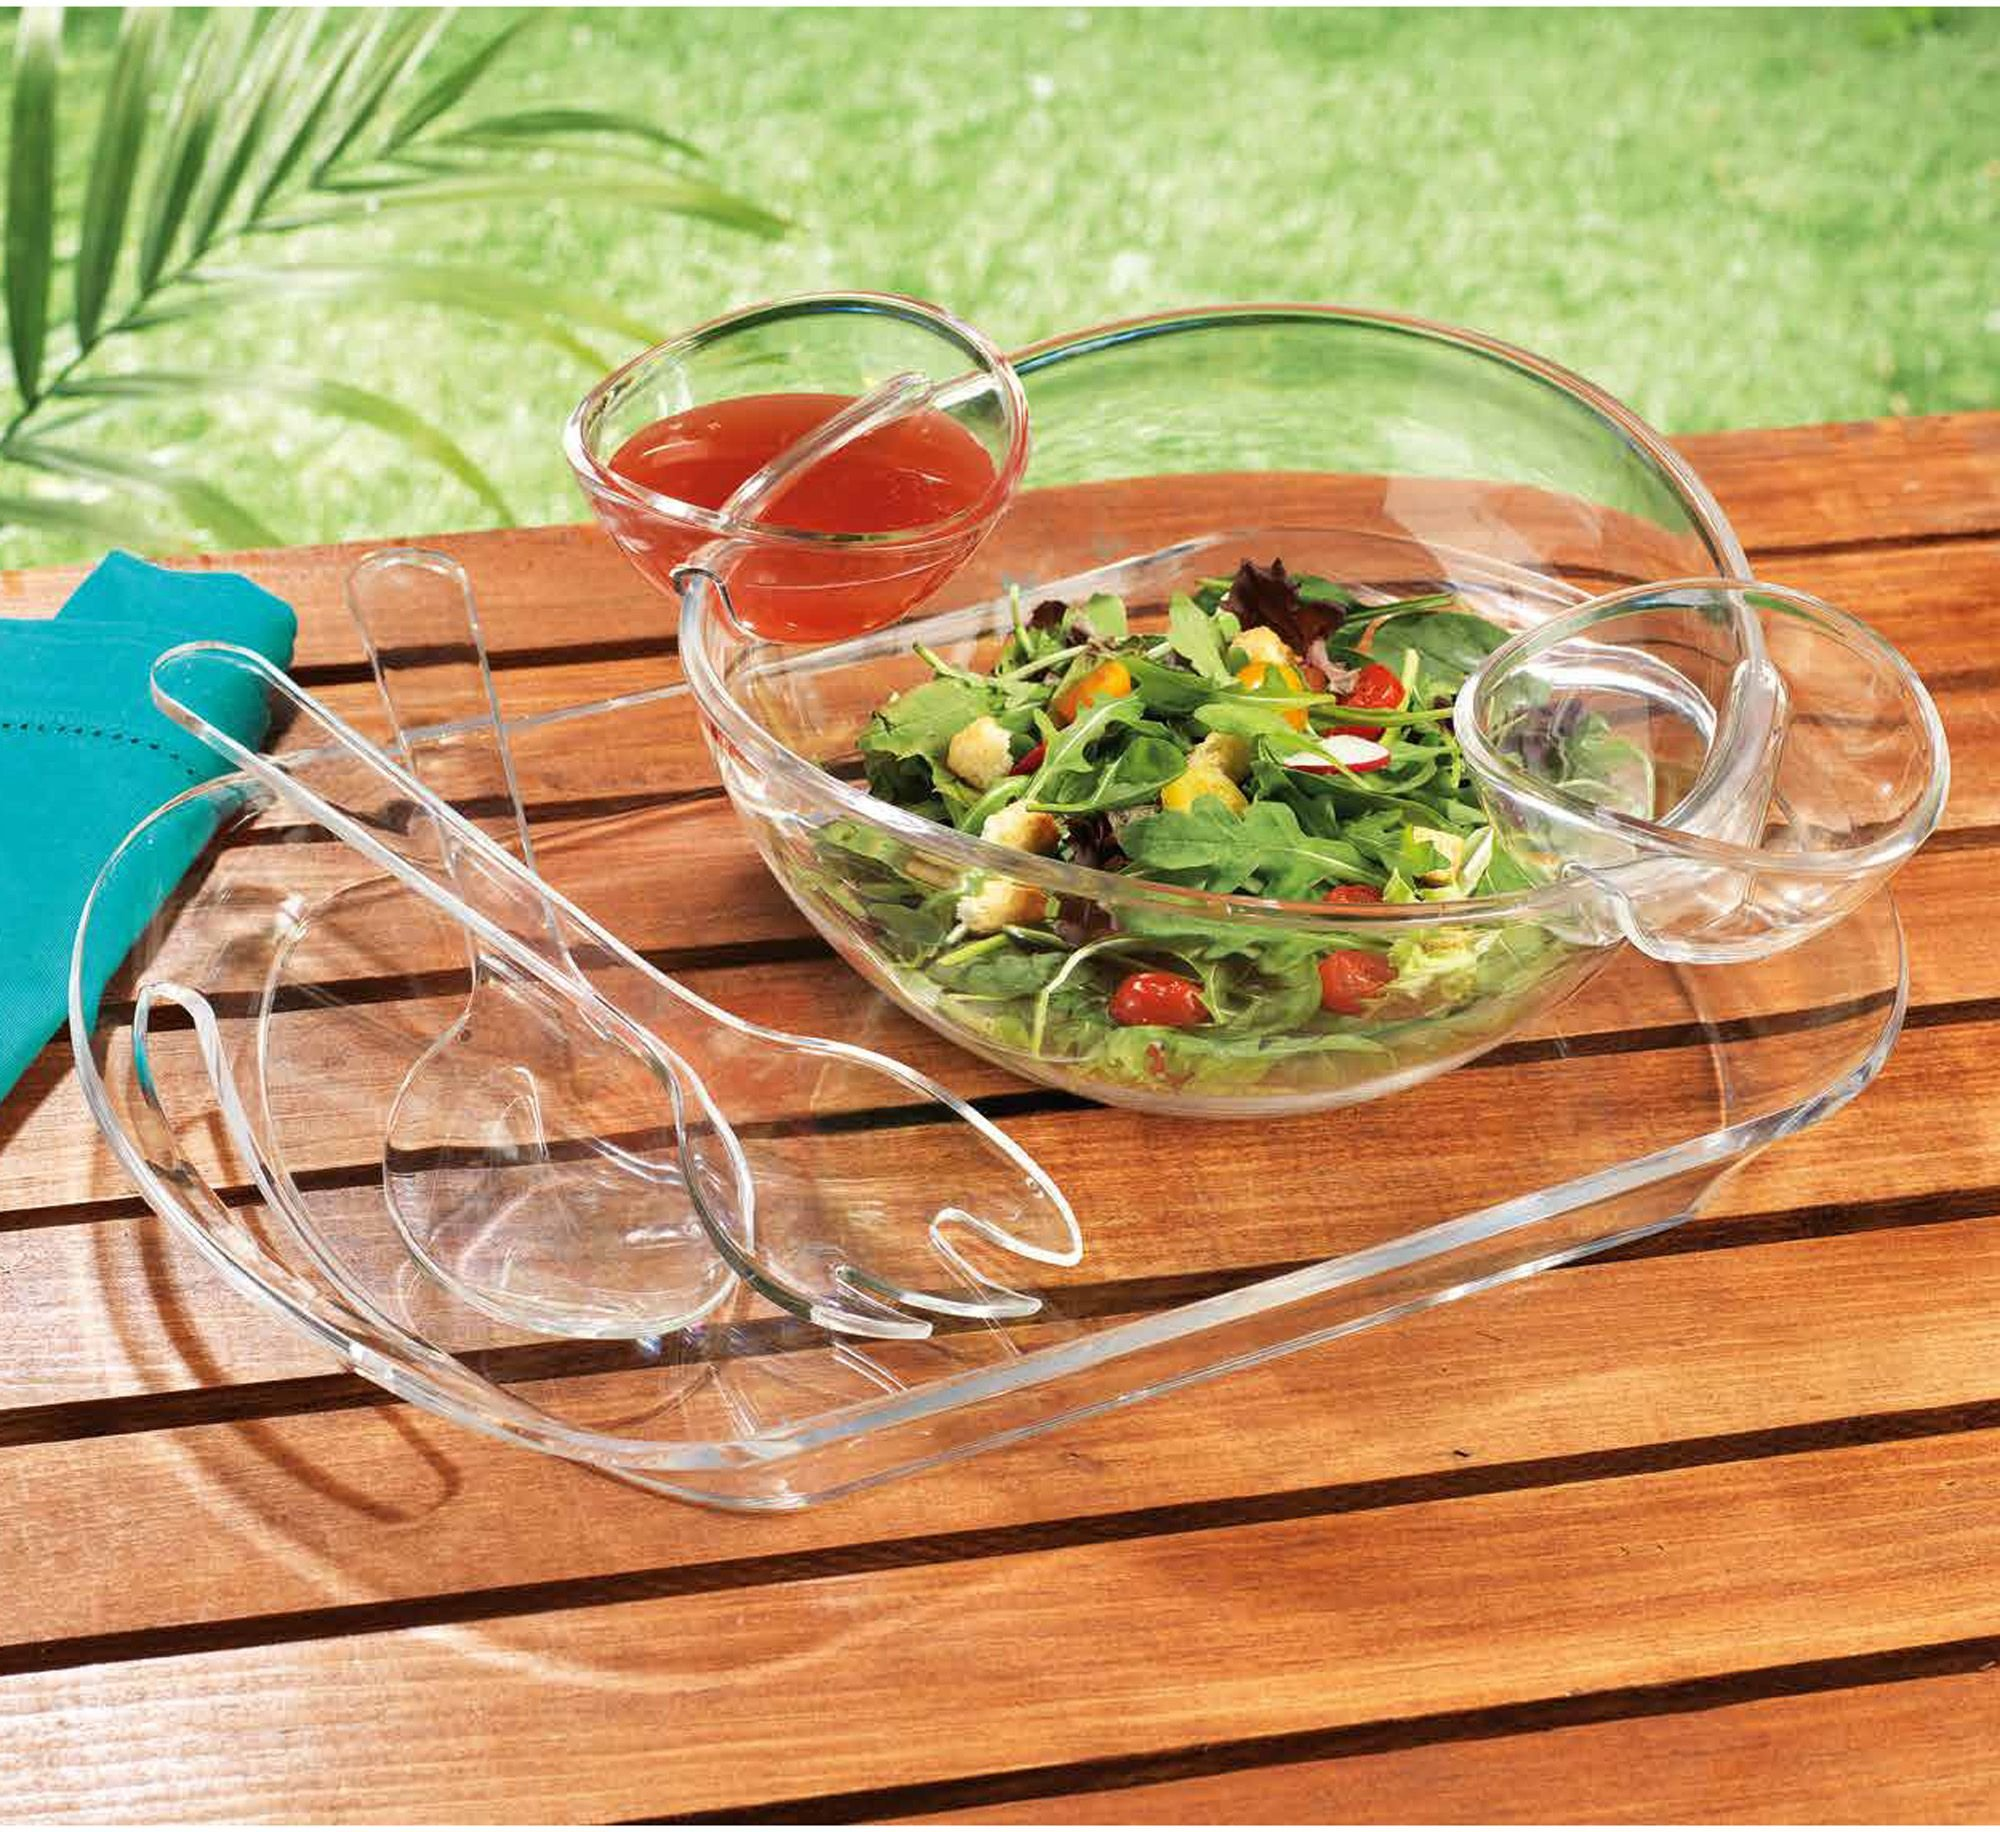 Elegant Home Acrylic 6 PC Salad Serving Set | Chip & Dip Bowl With Serving Utensils on Tray.